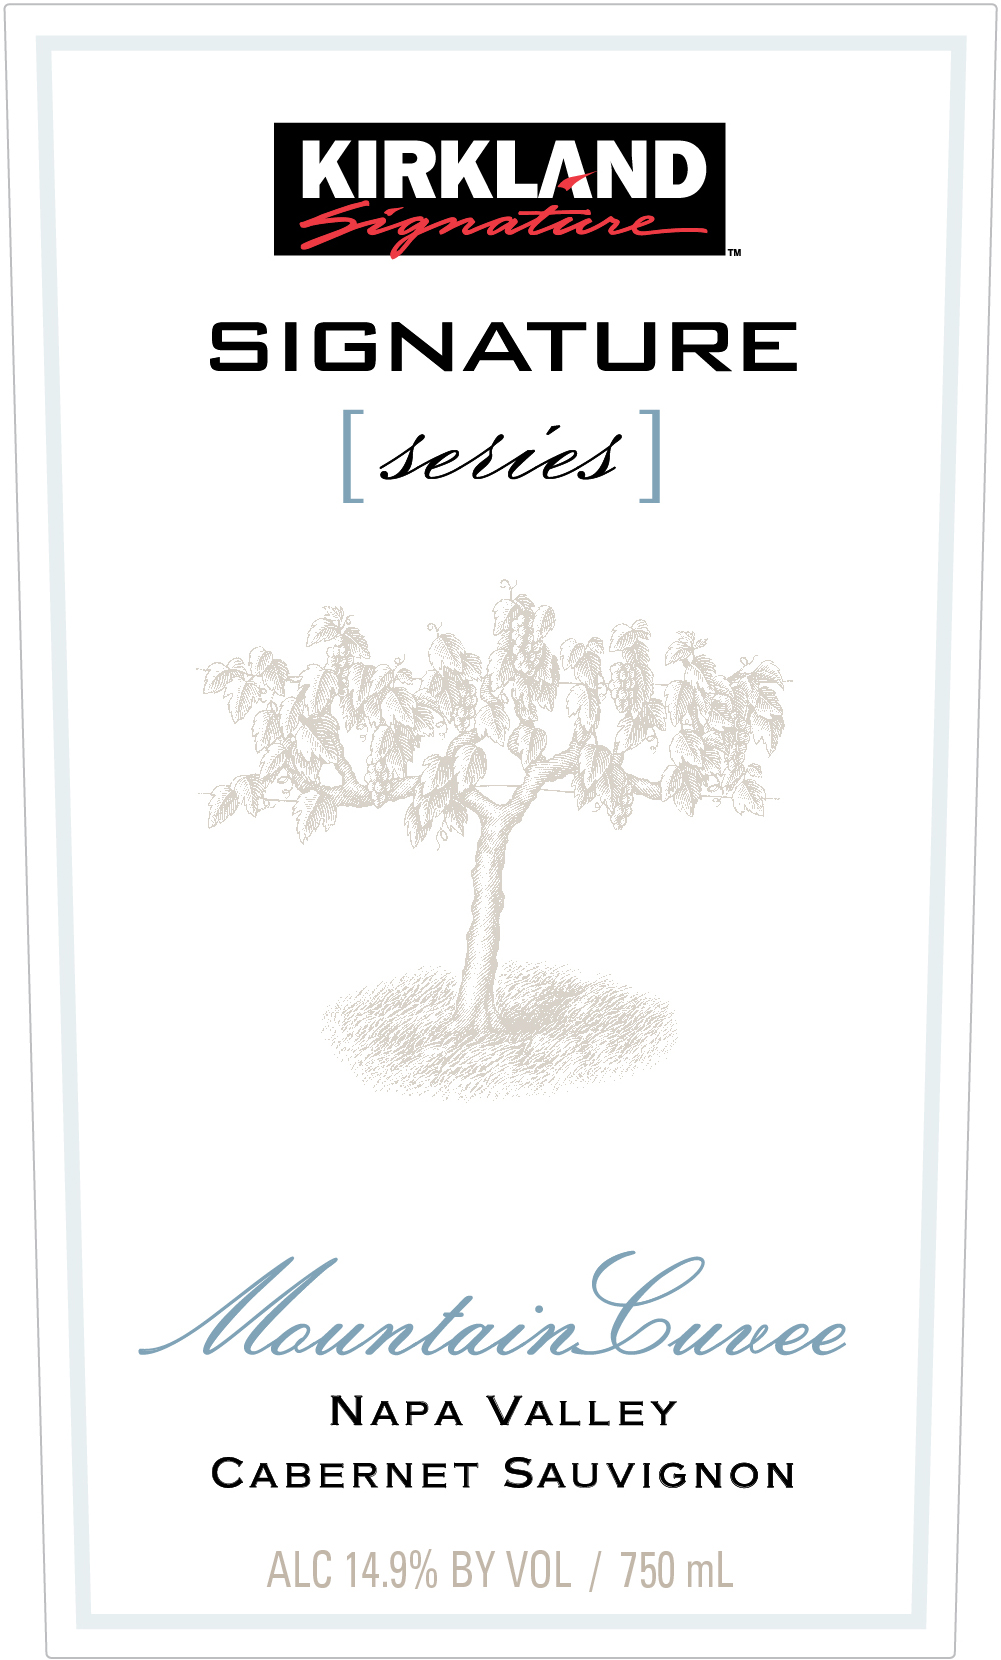 """Mountain fruit benefits from improved drainage and greater   photosynthesis. It is known for elegance, density and balanced acidity. This Kirkland Signature Napa Valley Mountain Cuvee Cabernet Sauvignon has distinct mountain fruit notes of black cherry, black currants and blackberry coupled with coffee and dark chocolate notes.  The cedar wood and spice notes are from 100% French Oak.""       Winemakers Marco DiGiulio and Zach Long         Kirkland Signature Napa Valley Mountain Cuvee is 100% Napa Valley AVA. Grapes are also sourced from Mt. Veeder, Diamond Mountain, Atlas Peak and Howell Mountain."